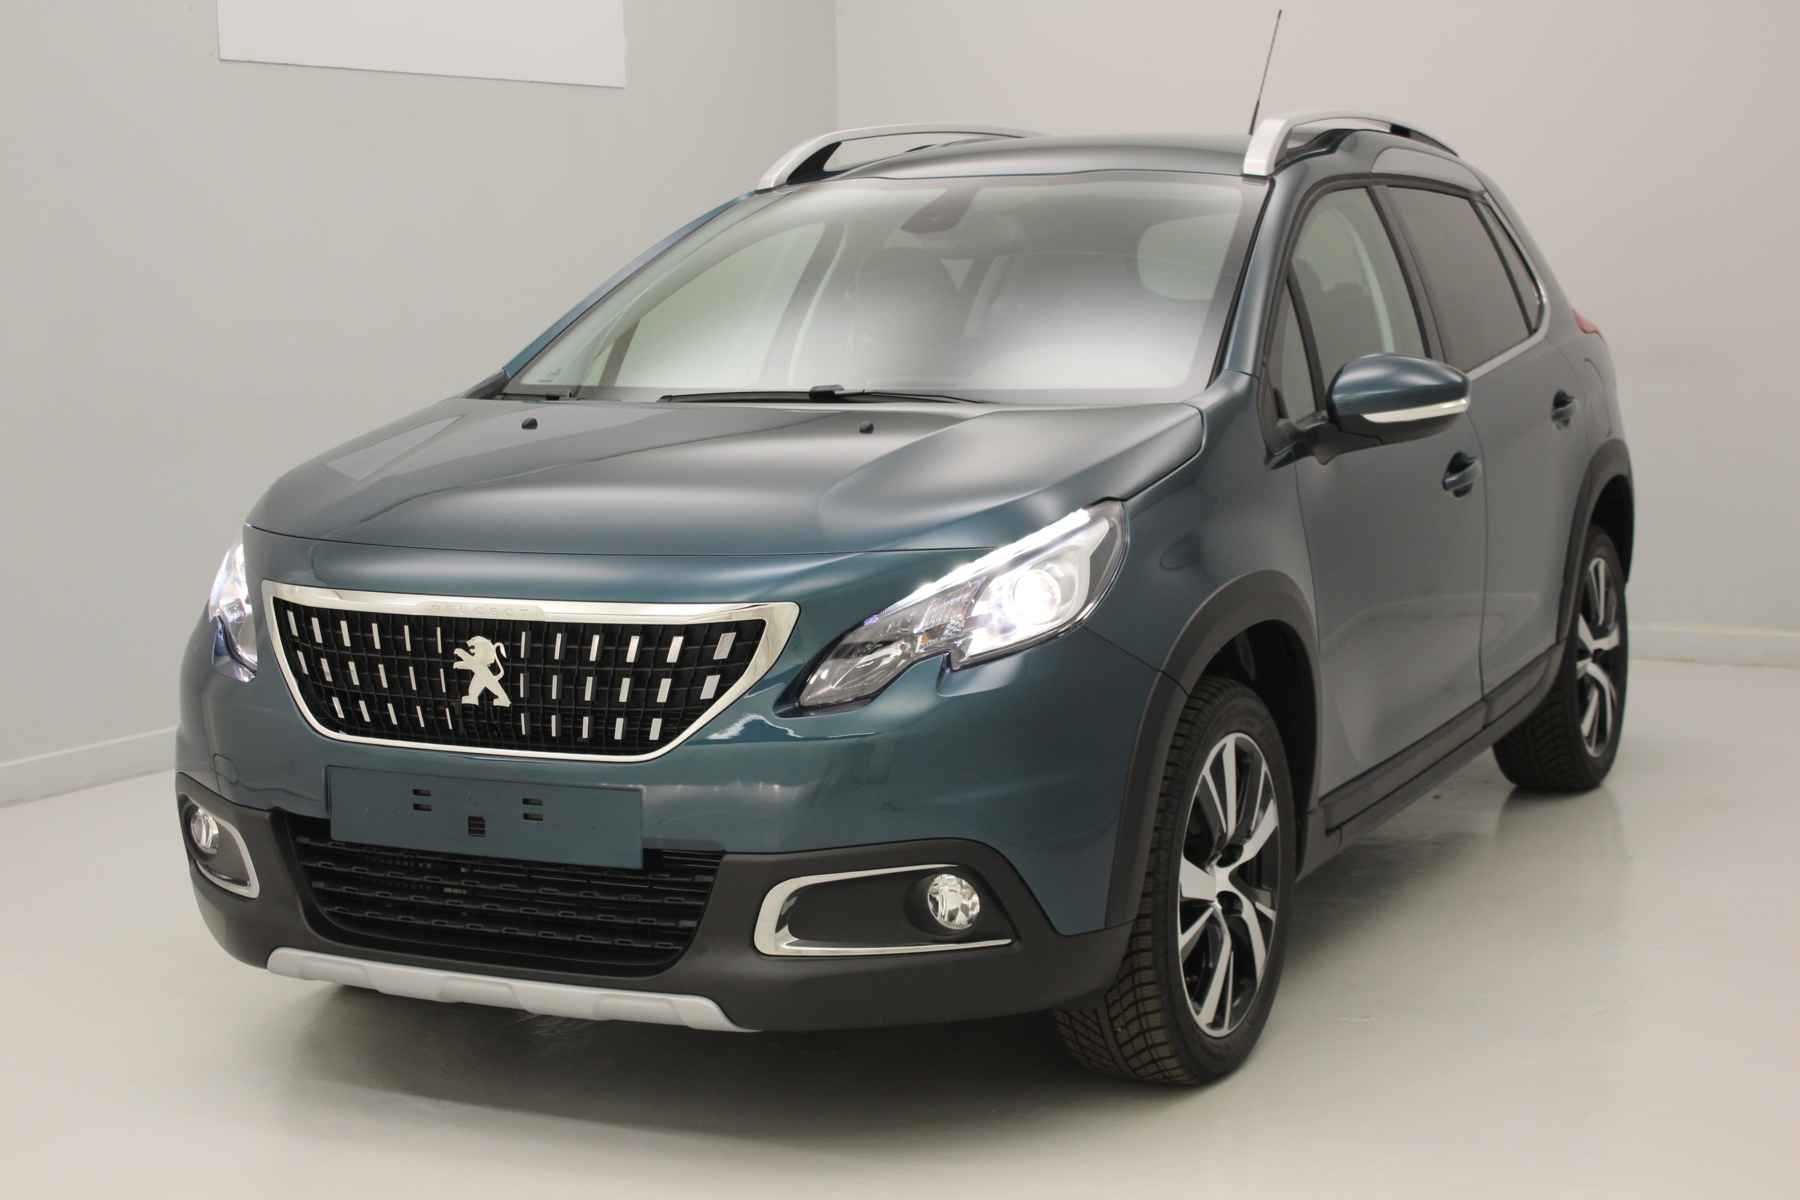 PEUGEOT 2008 Nouveau 1.6 BlueHDi 100ch BVM5 Allure Emerald Crystal + GPS + Pack Grip Control avec options